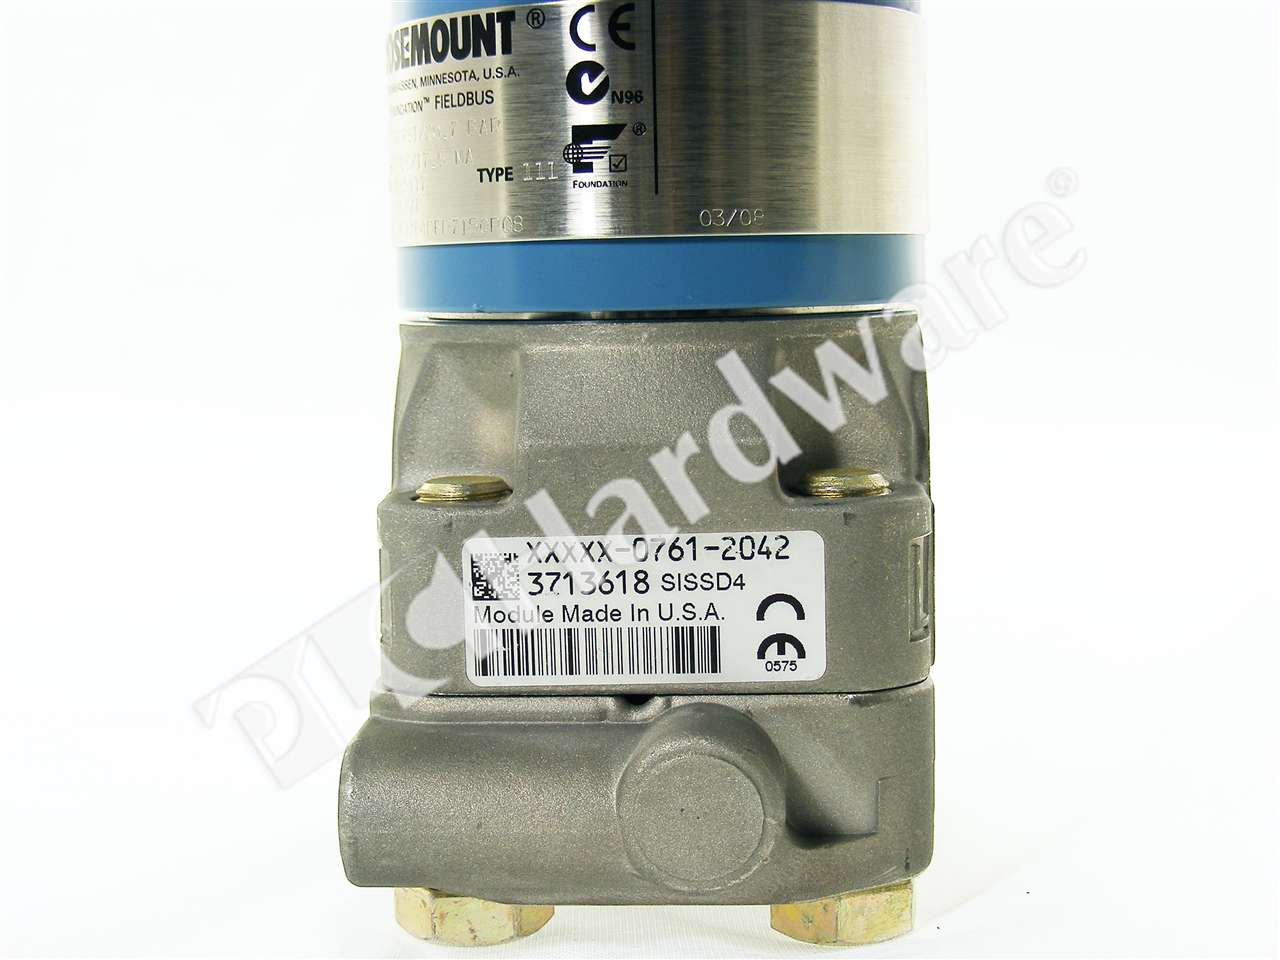 rosemount pressure transmitter 3051 manual